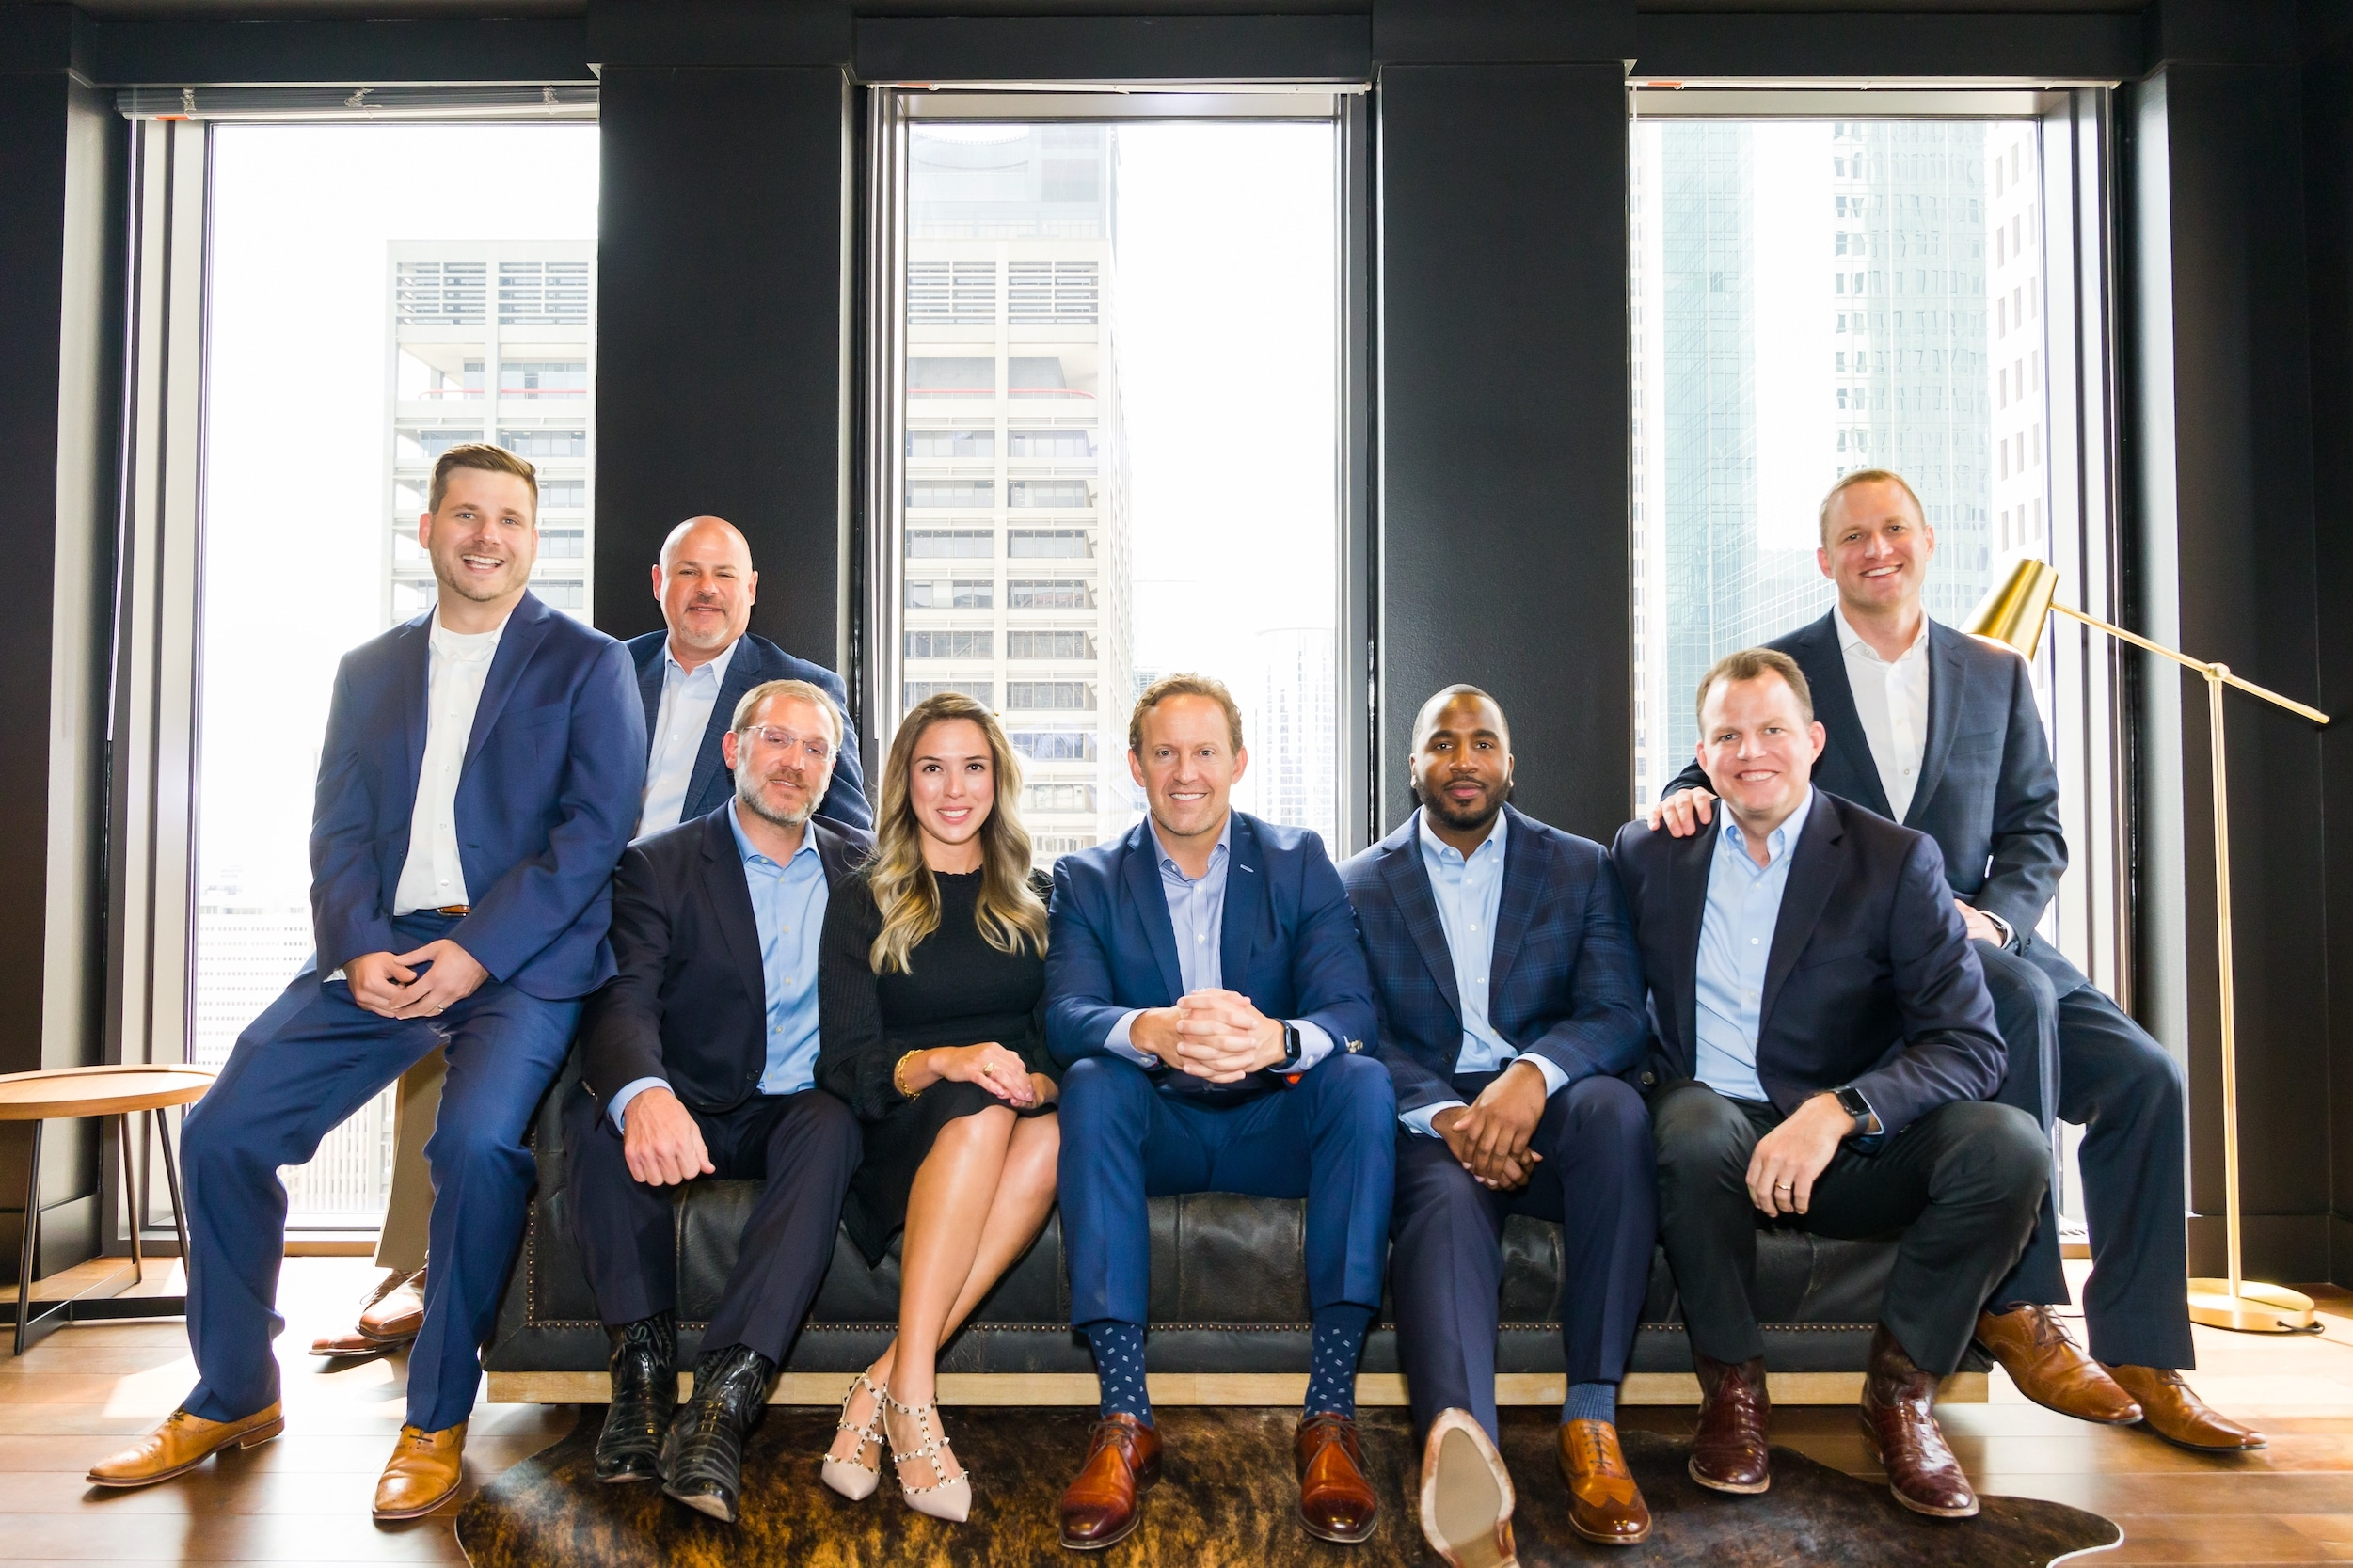 The EVX Midstream leadership team seated on a large couch posing for a group photo.